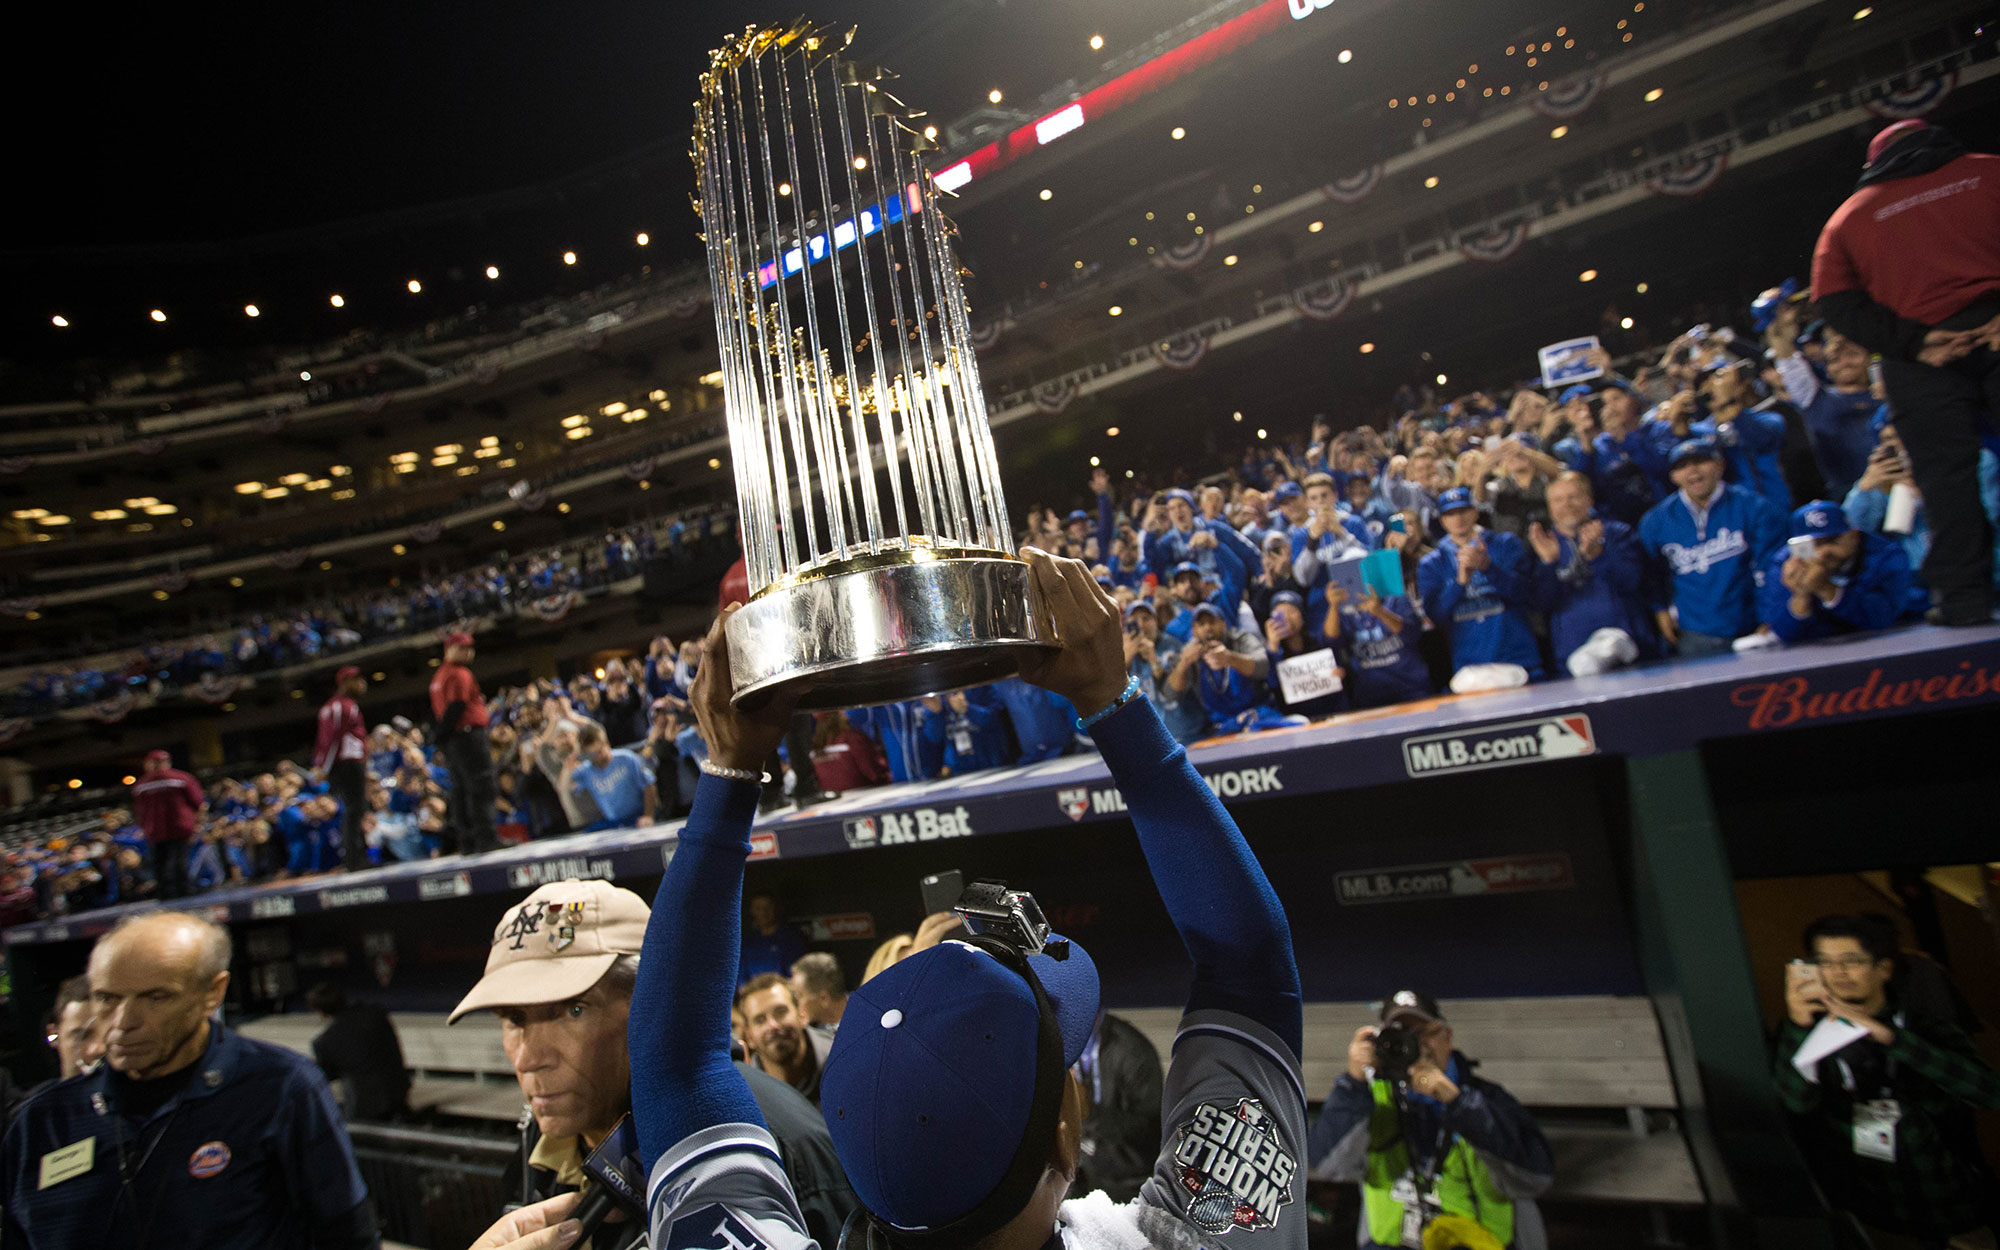 20 Secret Hotel Amenities Even the Concierge Doesn't Know About: Hold the World Series Trophy